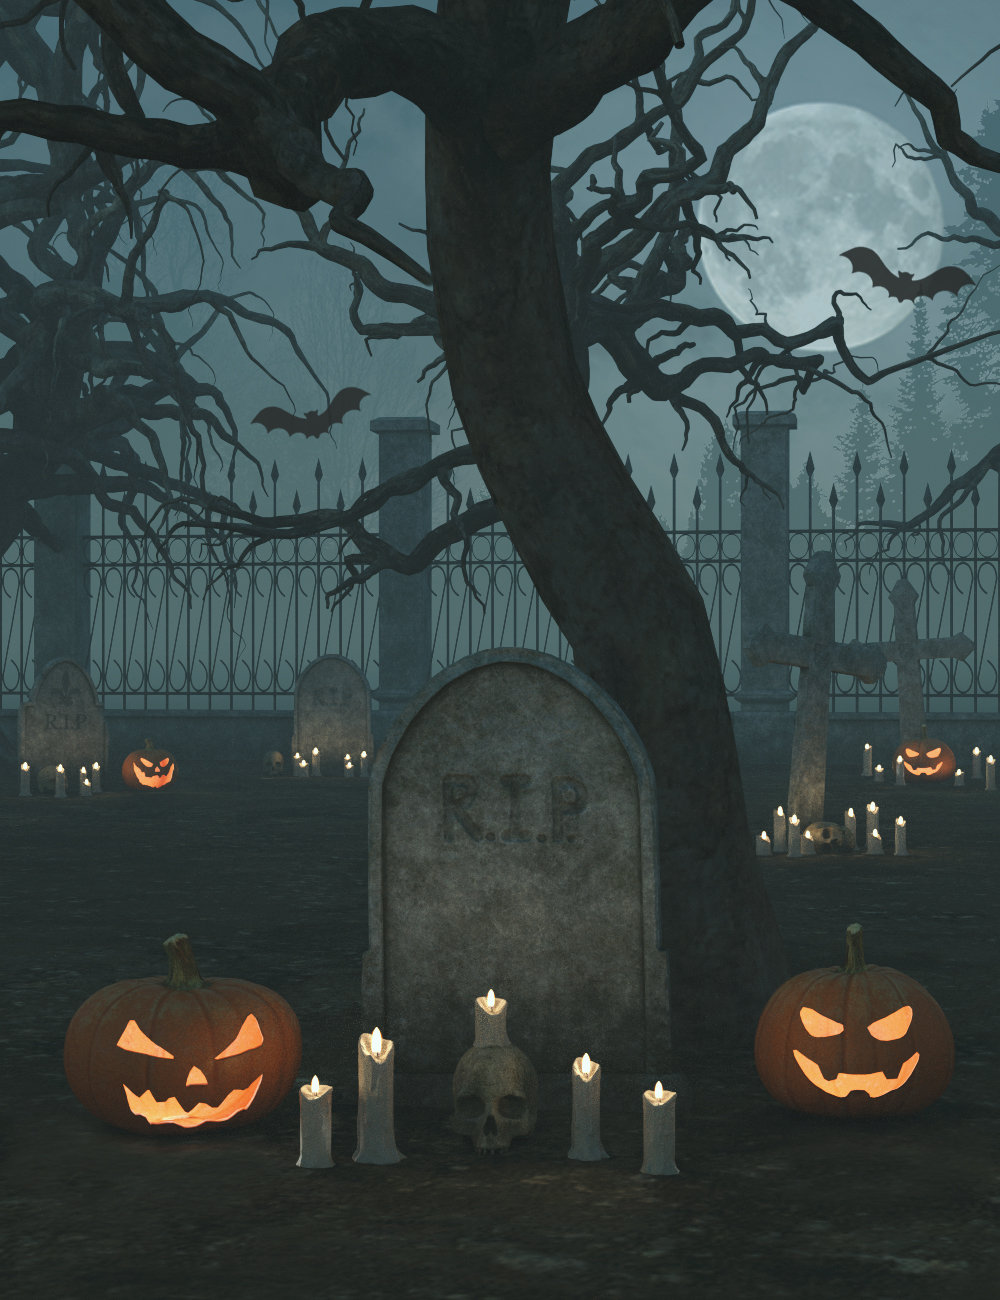 Land of Halloween by: 3dLab, 3D Models by Daz 3D